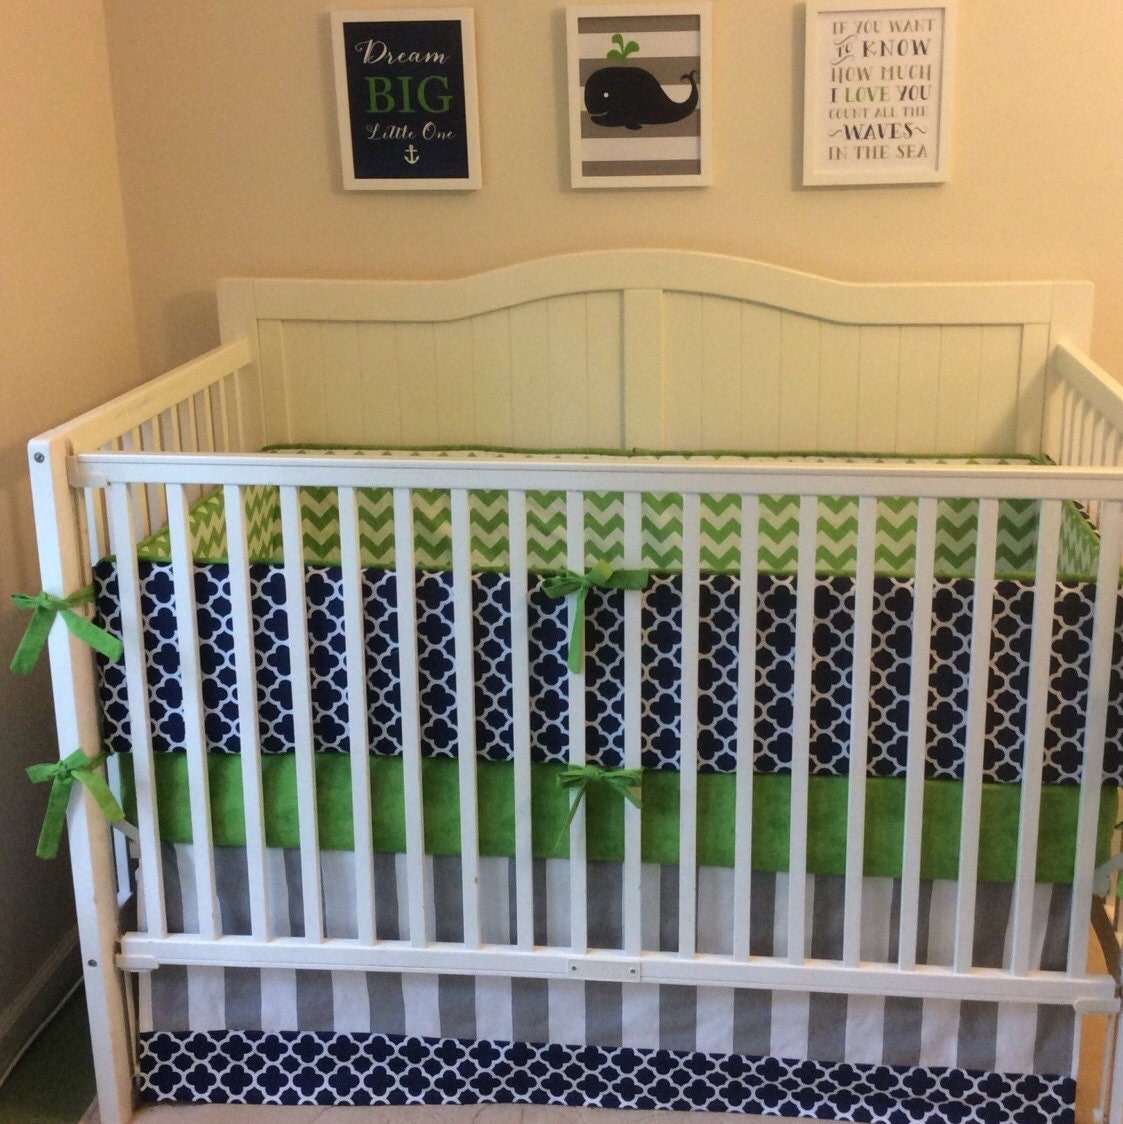 Crib bedding set gray white navy blue with by butterbeansboutique - Baby Boy Crib Bedding Set Navy Blue Green And Gray Quatrefoil